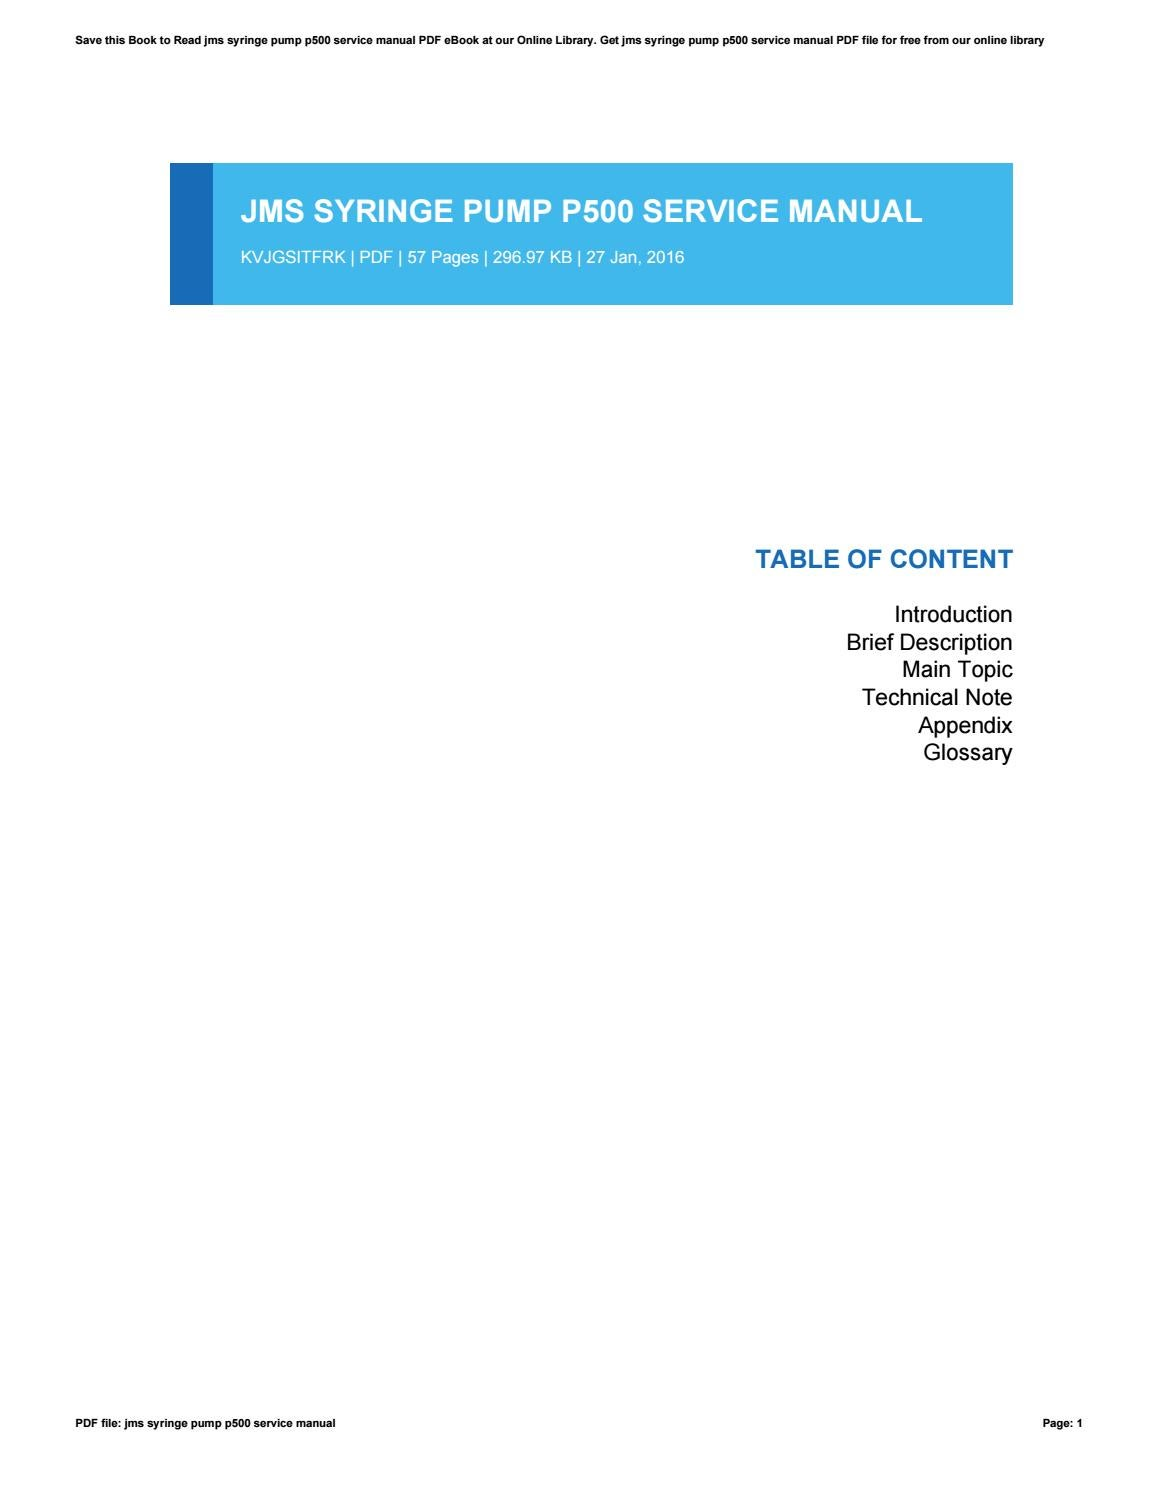 Free download ebook jms